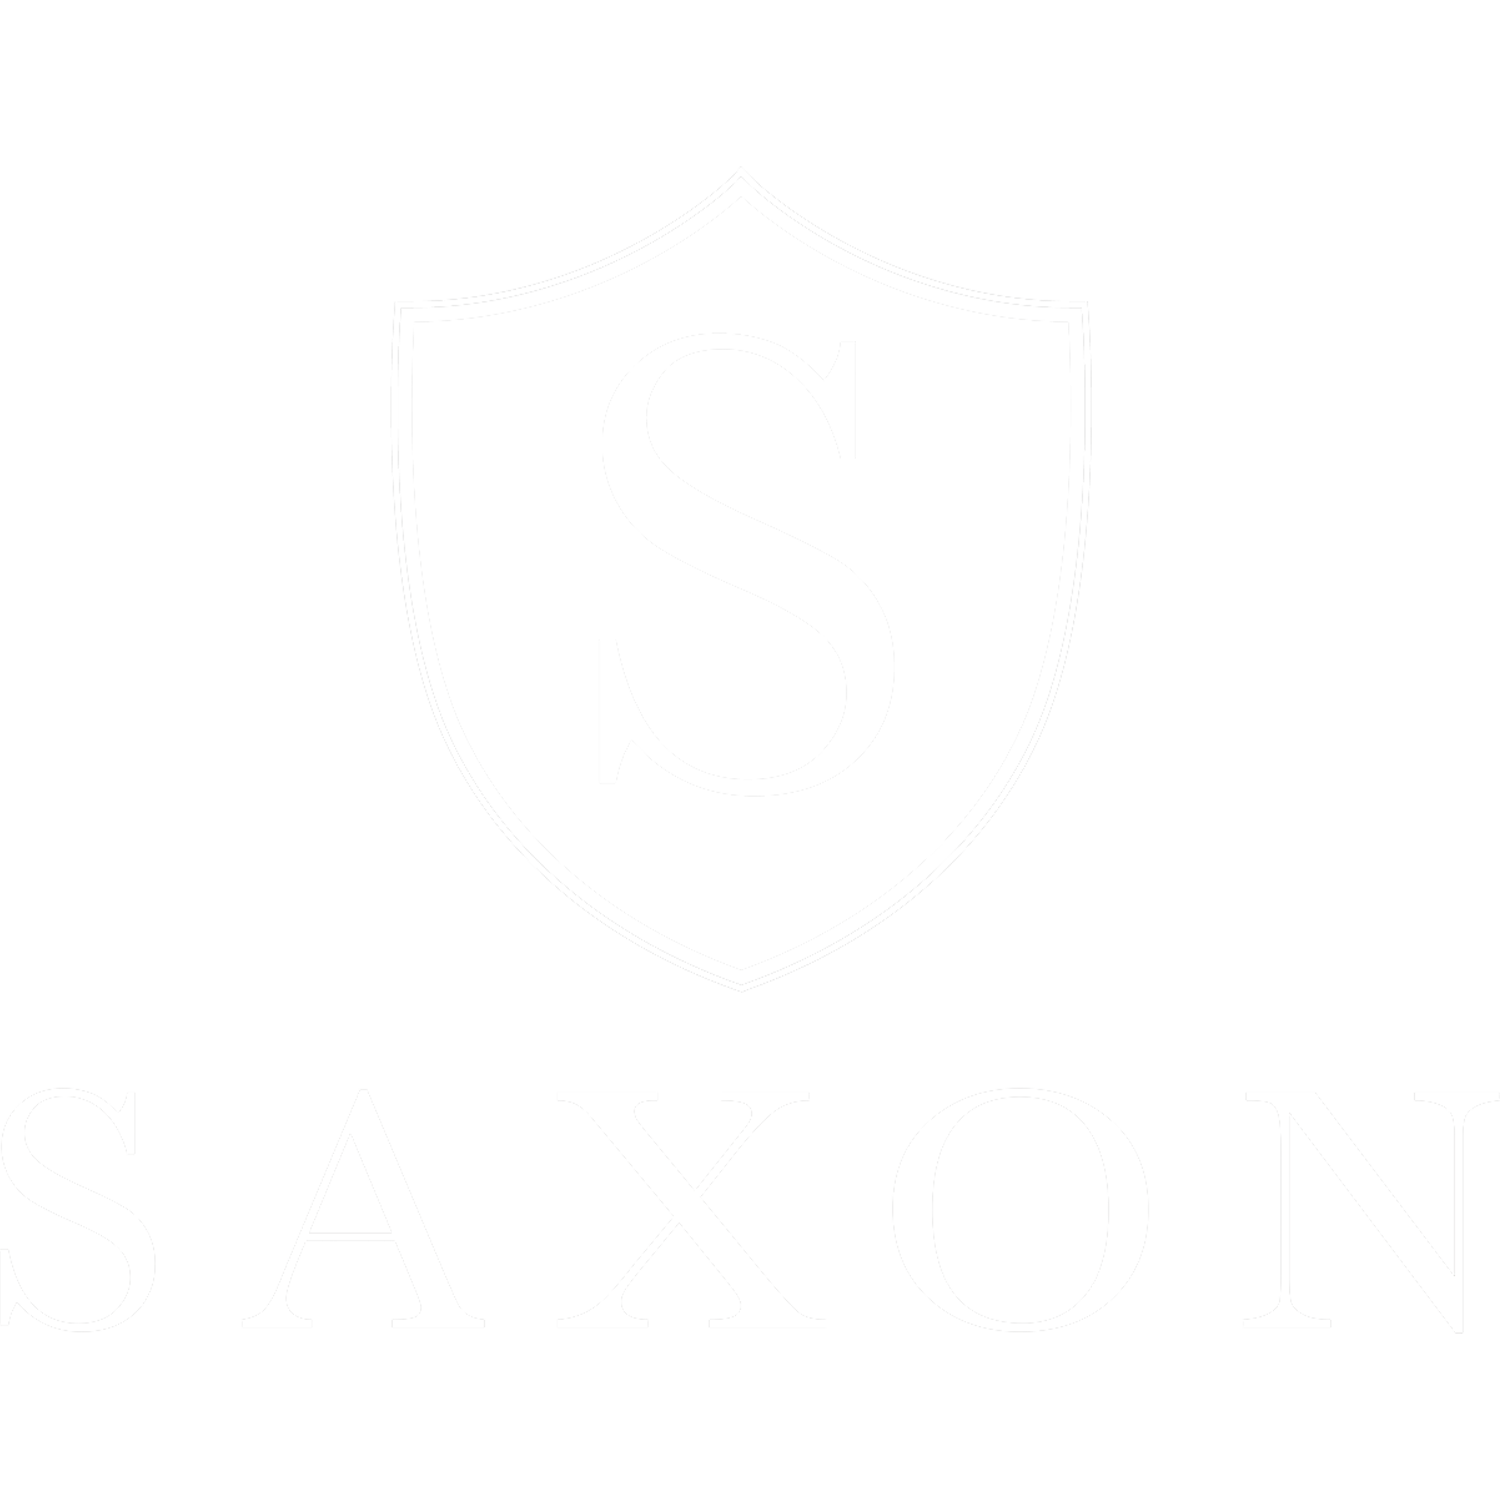 Saxon Insurance Brokers